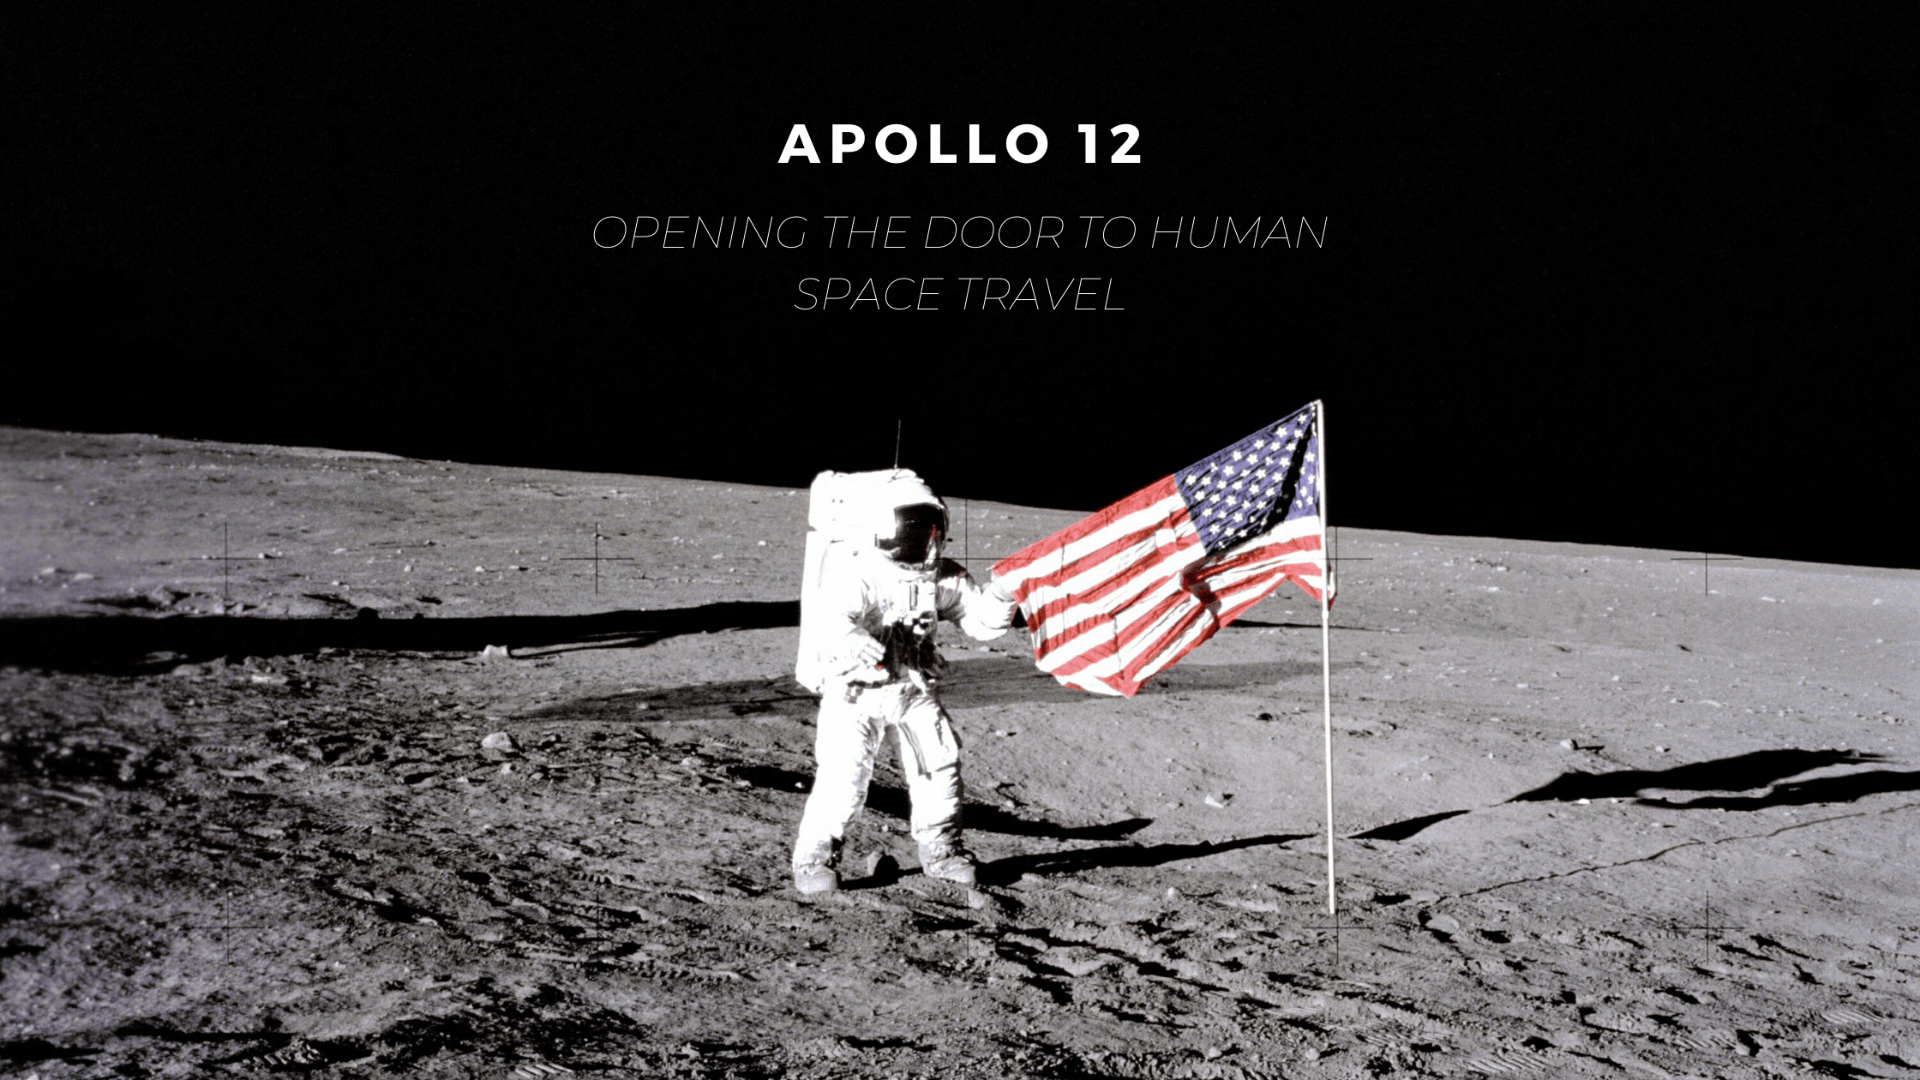 Astronaut Conrad with American flag on Moon surface